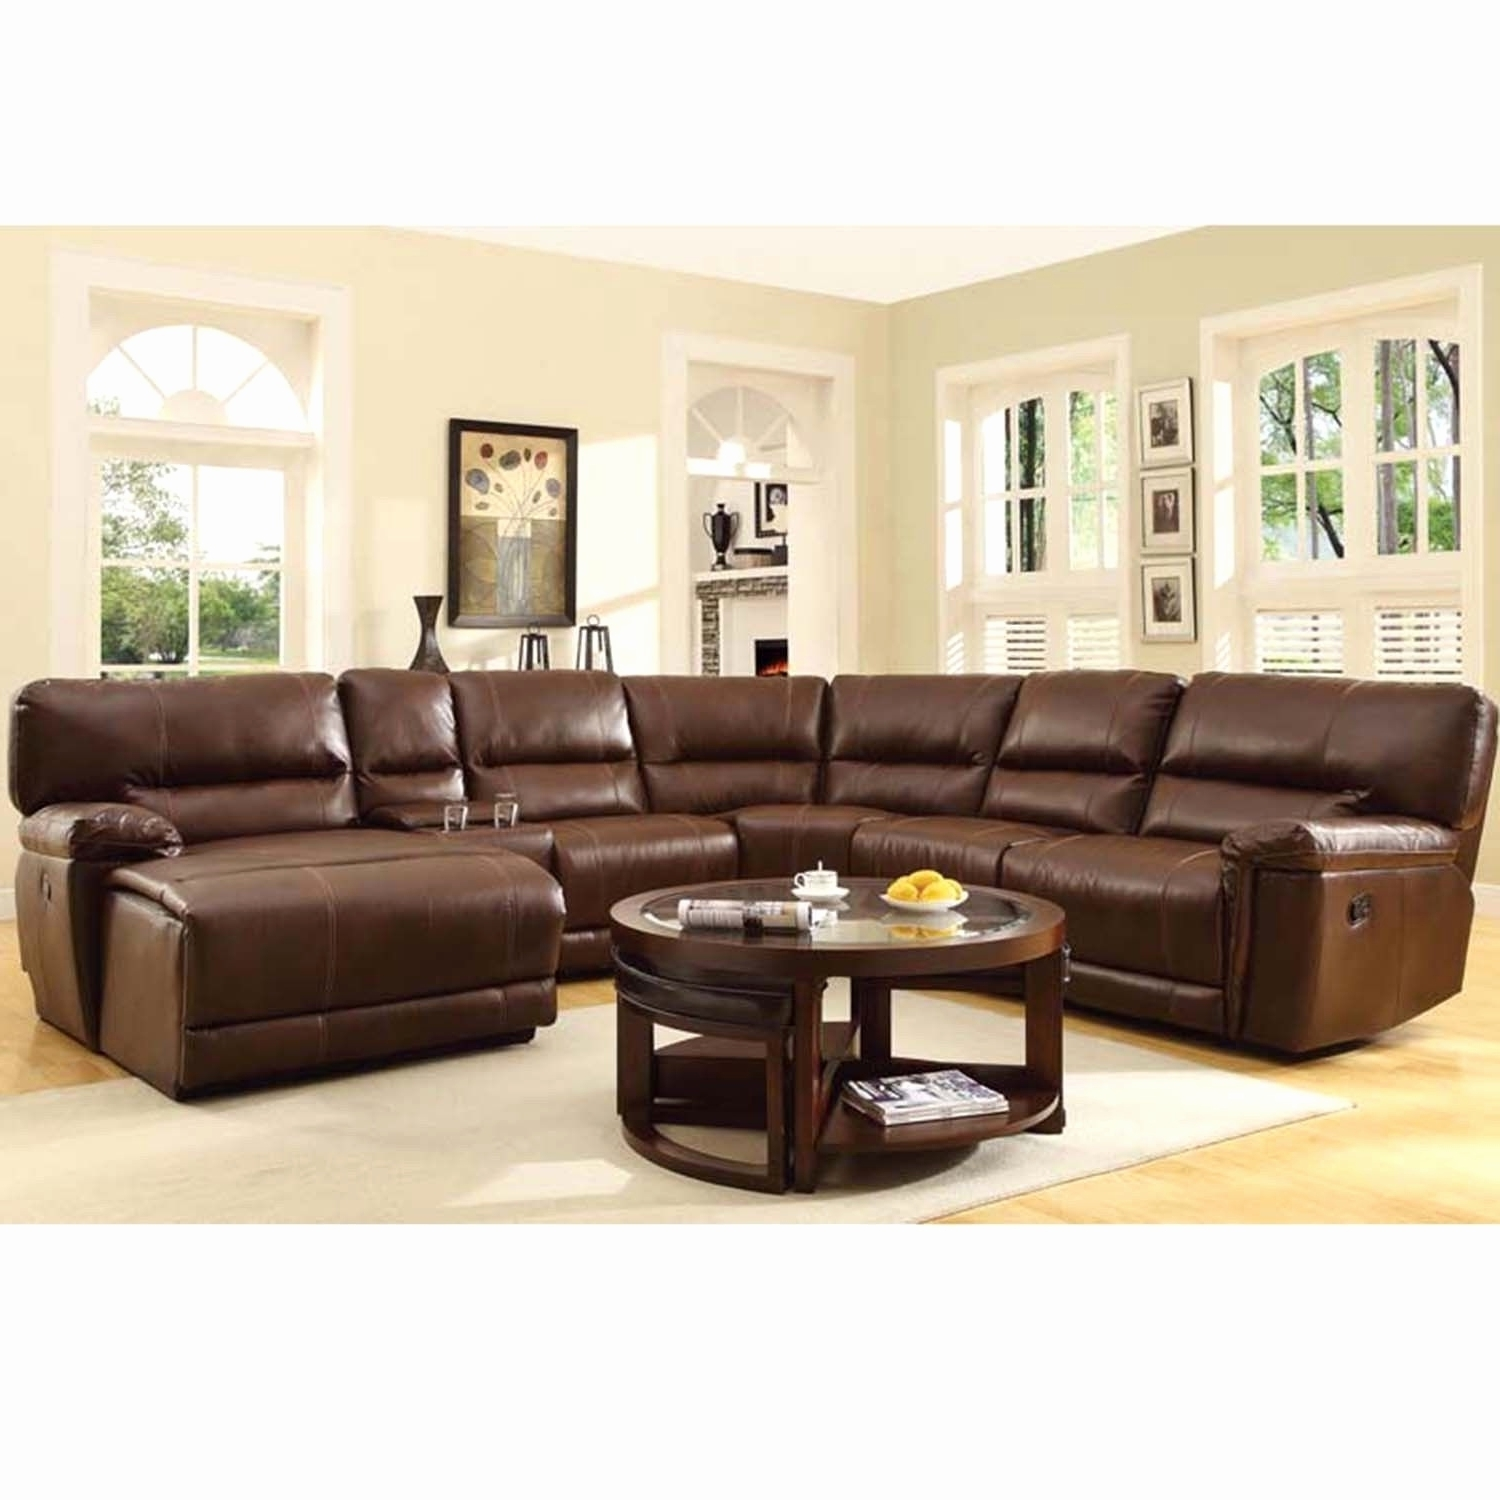 Sofas : Gray Couch Cheap Sectional Sofas Sectionals For Small Pertaining To Well Known Small Sectional Sofas For Small Spaces (View 12 of 15)